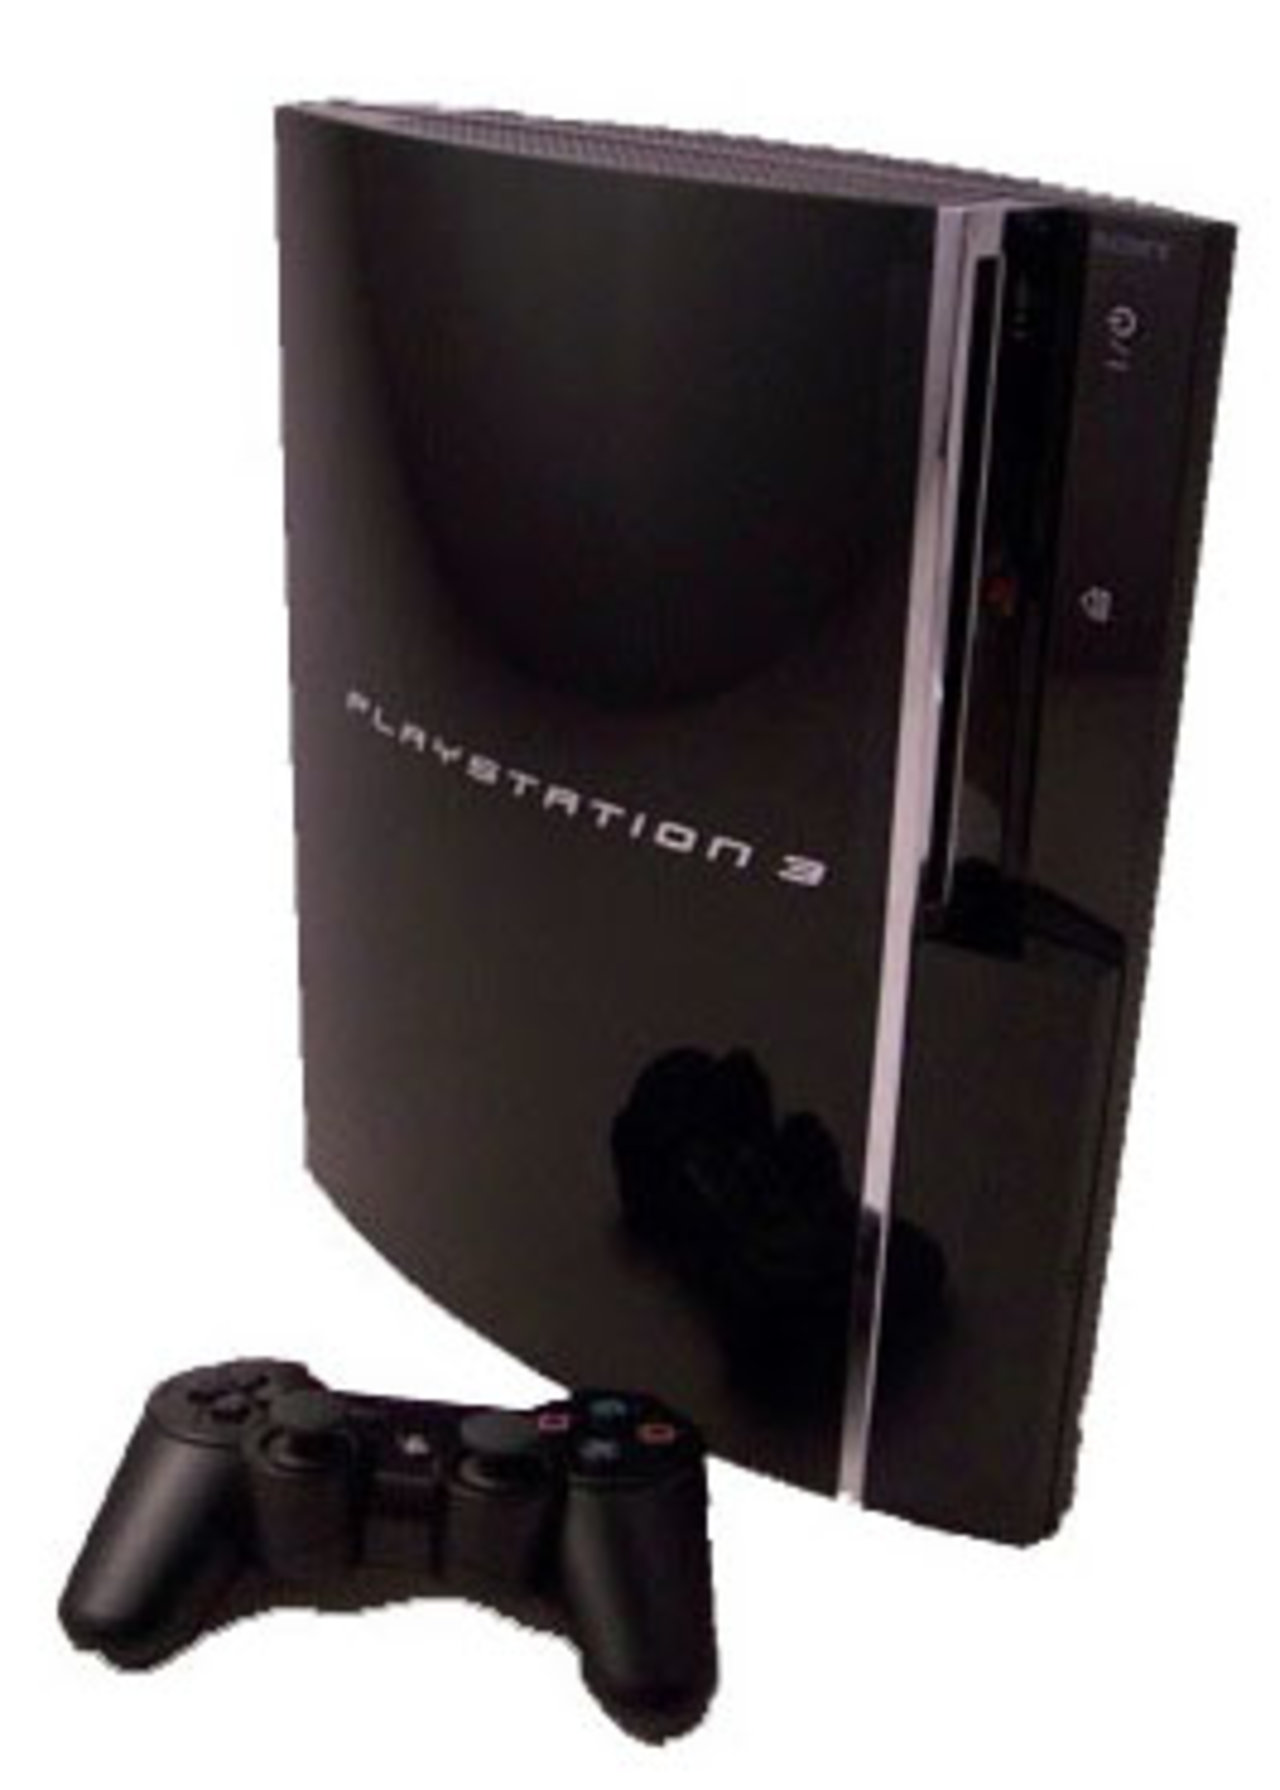 Gallery Playstation 3 Games Console Ps3 Photo 1